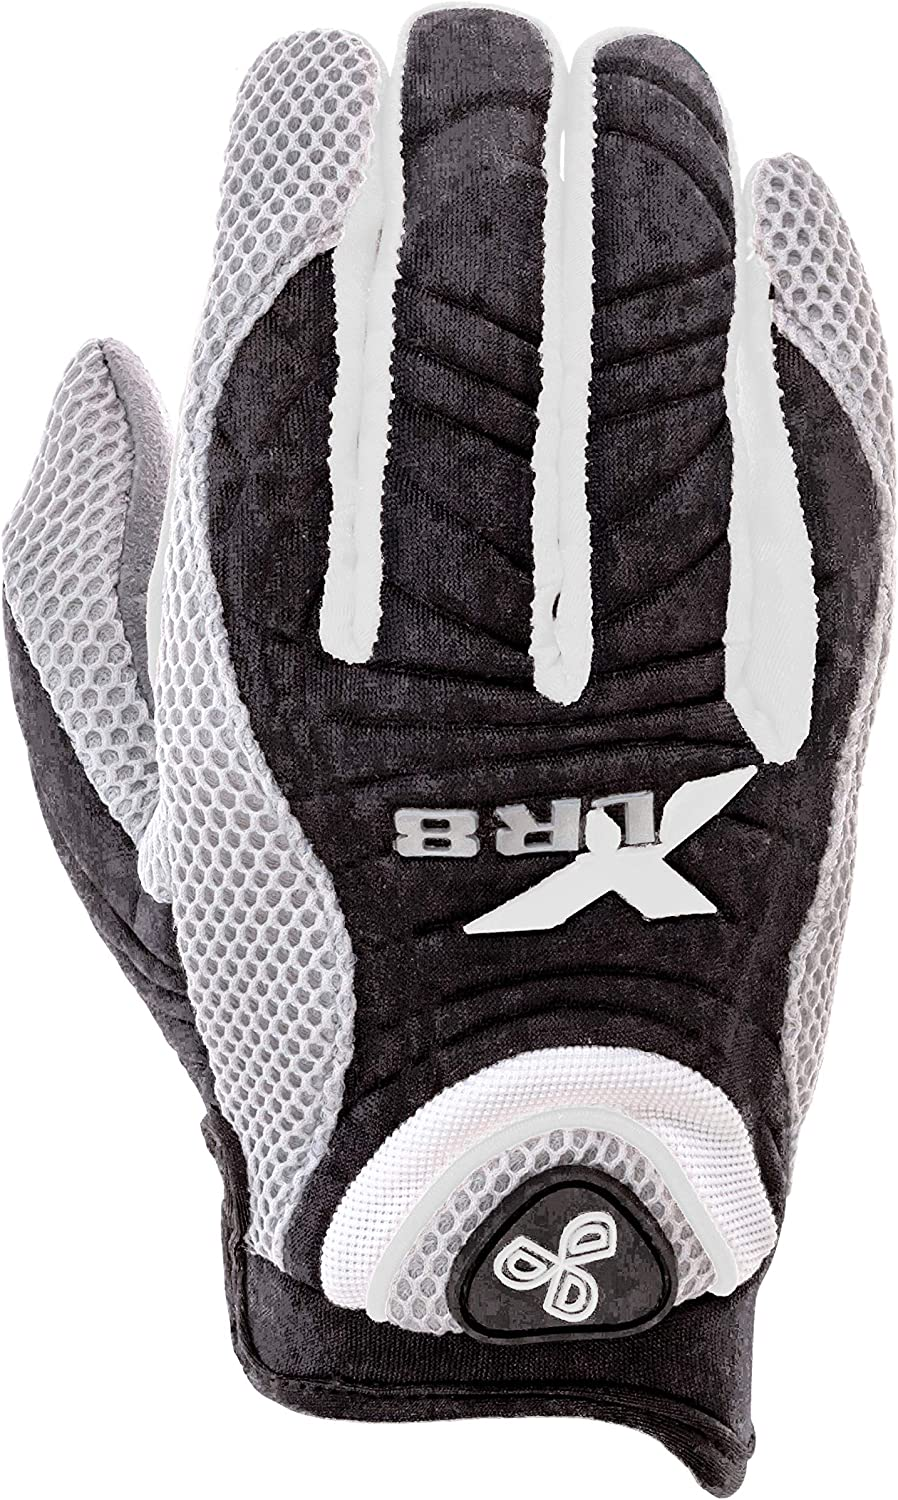 Great in Cold Weather Increase Bat Speed and Grip XLR8 Speed Baseball Batting Gloves Ergonomic Pattern Palm Padding Reduces Vibration /& Blisters Super Flexible Grip Enhancing Silicone Pads